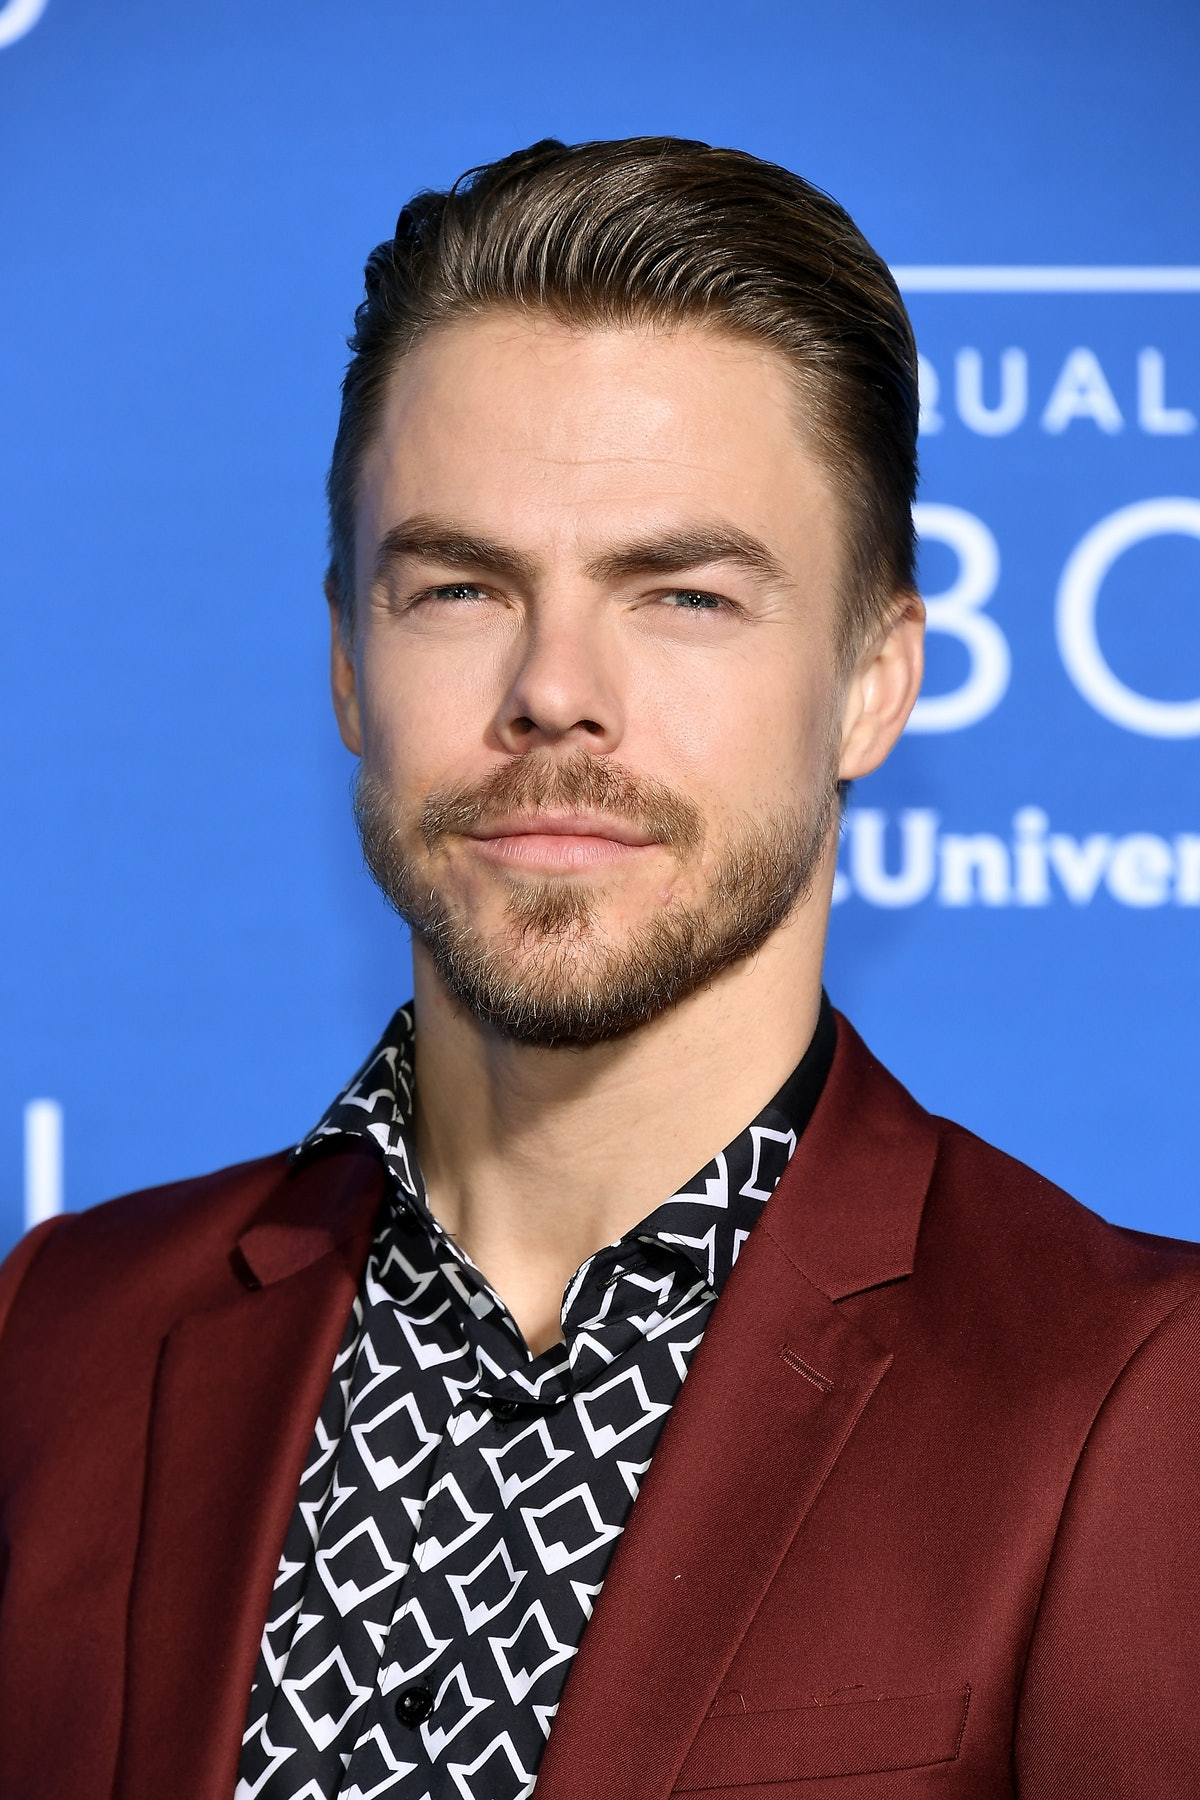 Why Isn't Derek Hough On 'Dancing With The Stars' Season 25? He's Kind Of Busy Right Now